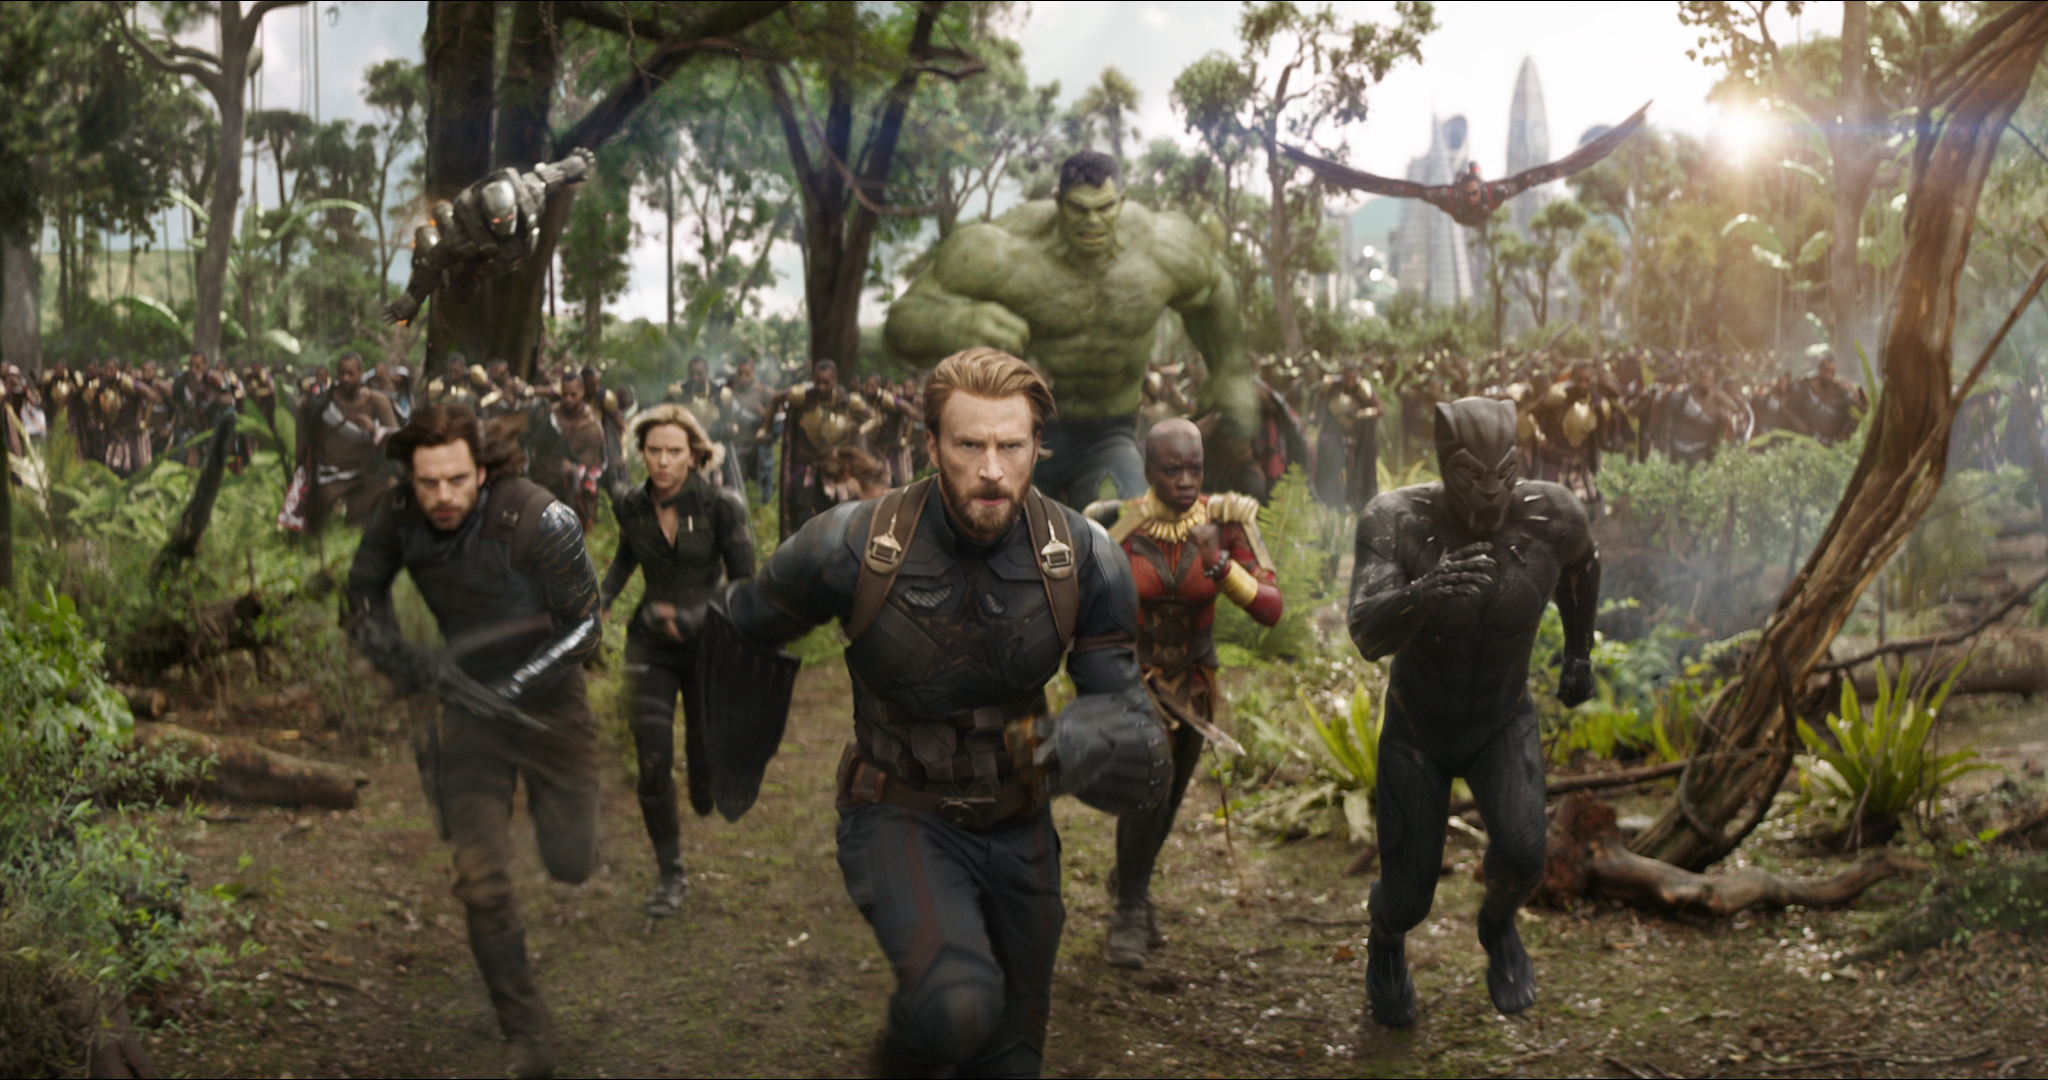 840c238629b18c 9 questions about Avengers: Infinity War you were too embarrassed to ask